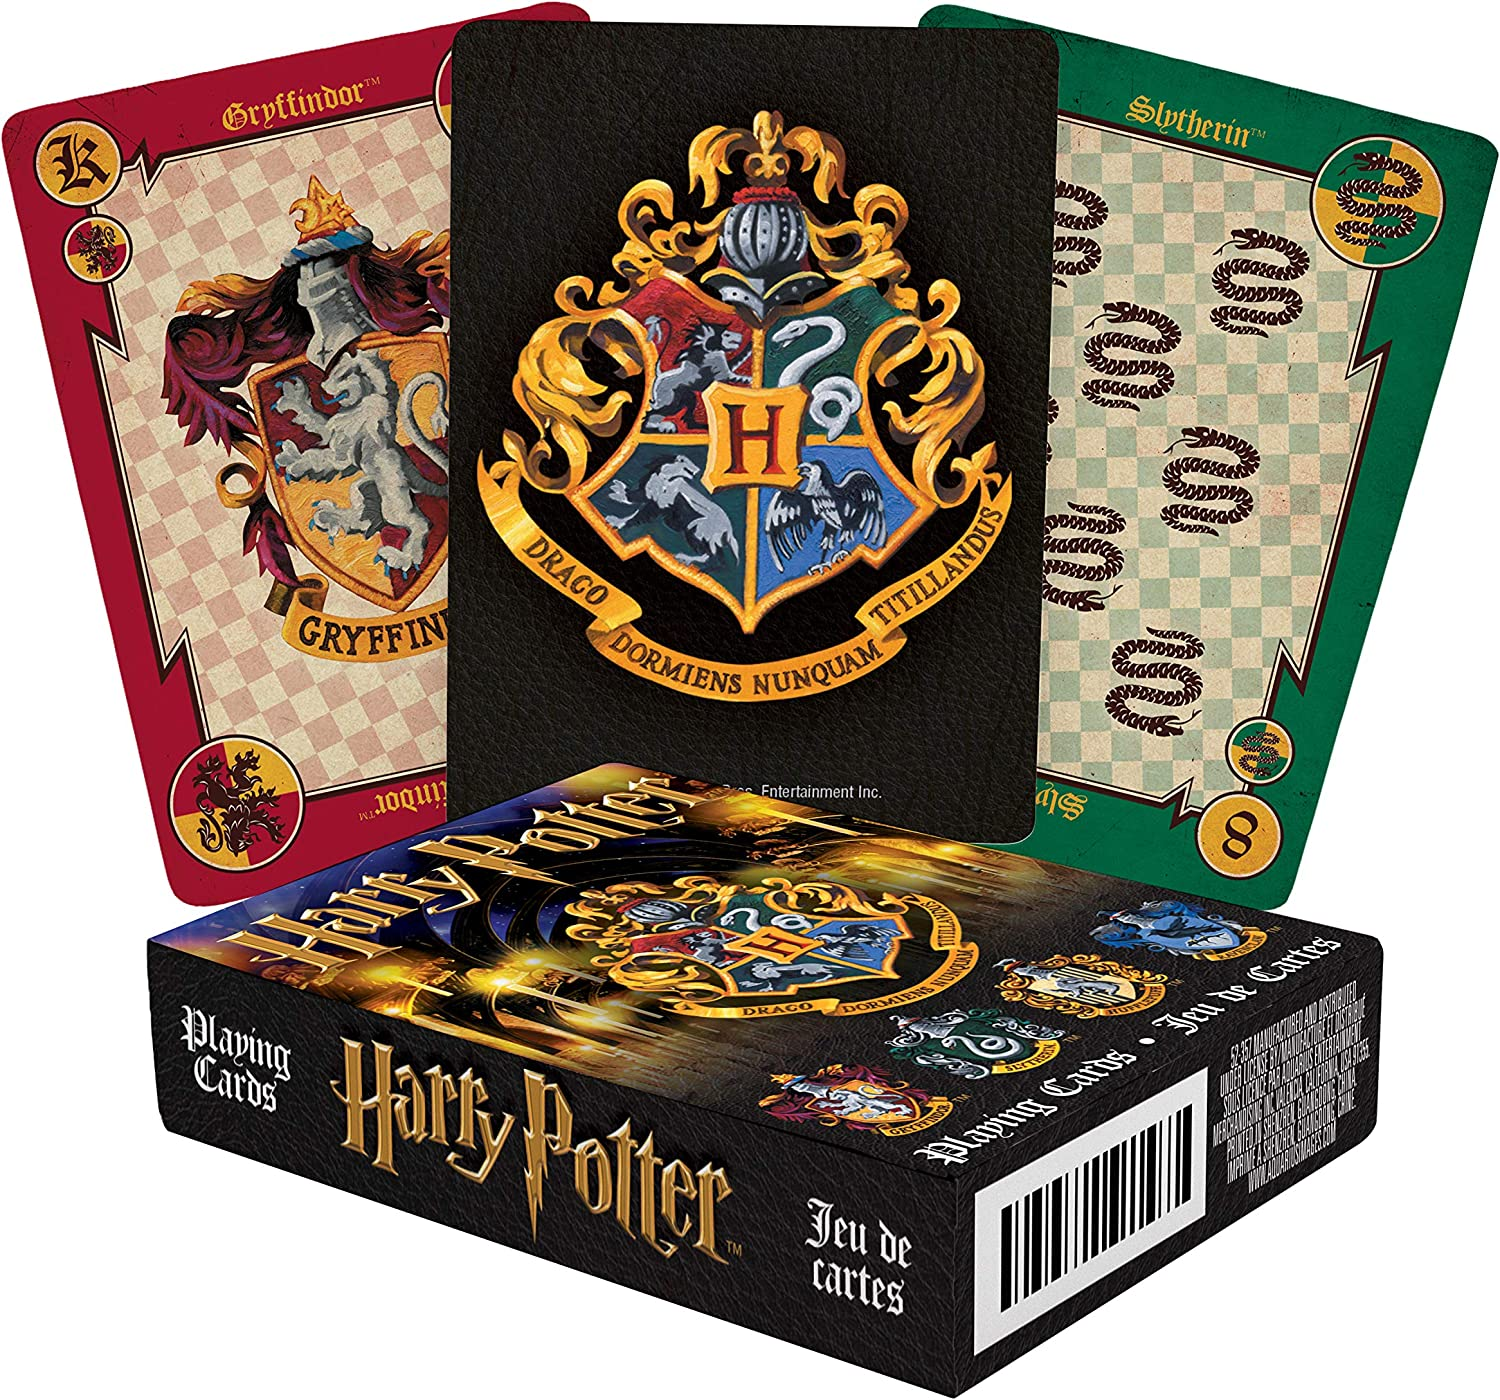 AQUARIUS Harry Potter Playing Cards - House Crests Themed Deck of Cards for Your Favorite Card Games - Officially Licensed Harry Potter Merchandise & Collectibles - Poker Size with Linen Finish